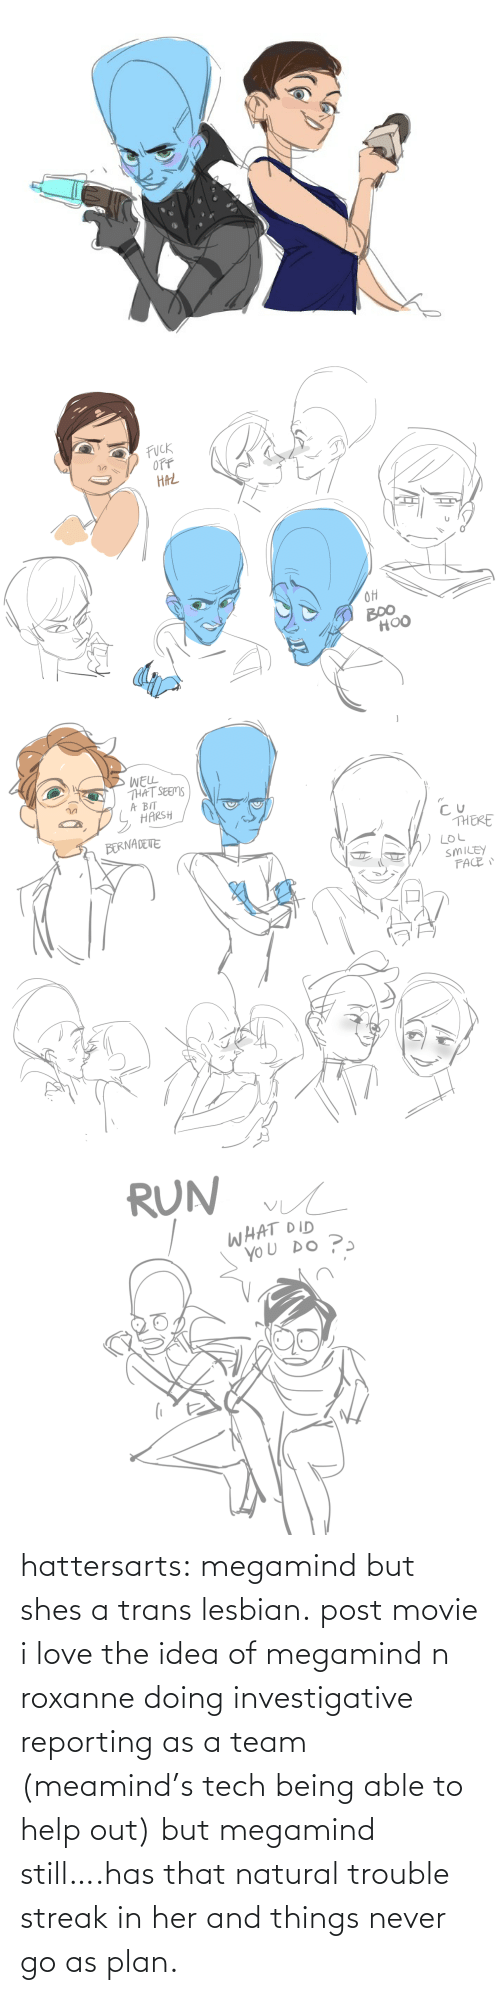 shes: hattersarts:  megamind but shes a trans lesbian.  post movie i love the idea of megamind n roxanne doing investigative reporting as a team (meamind's tech being able to help out) but megamind still….has that natural trouble streak in her and things never go as plan.